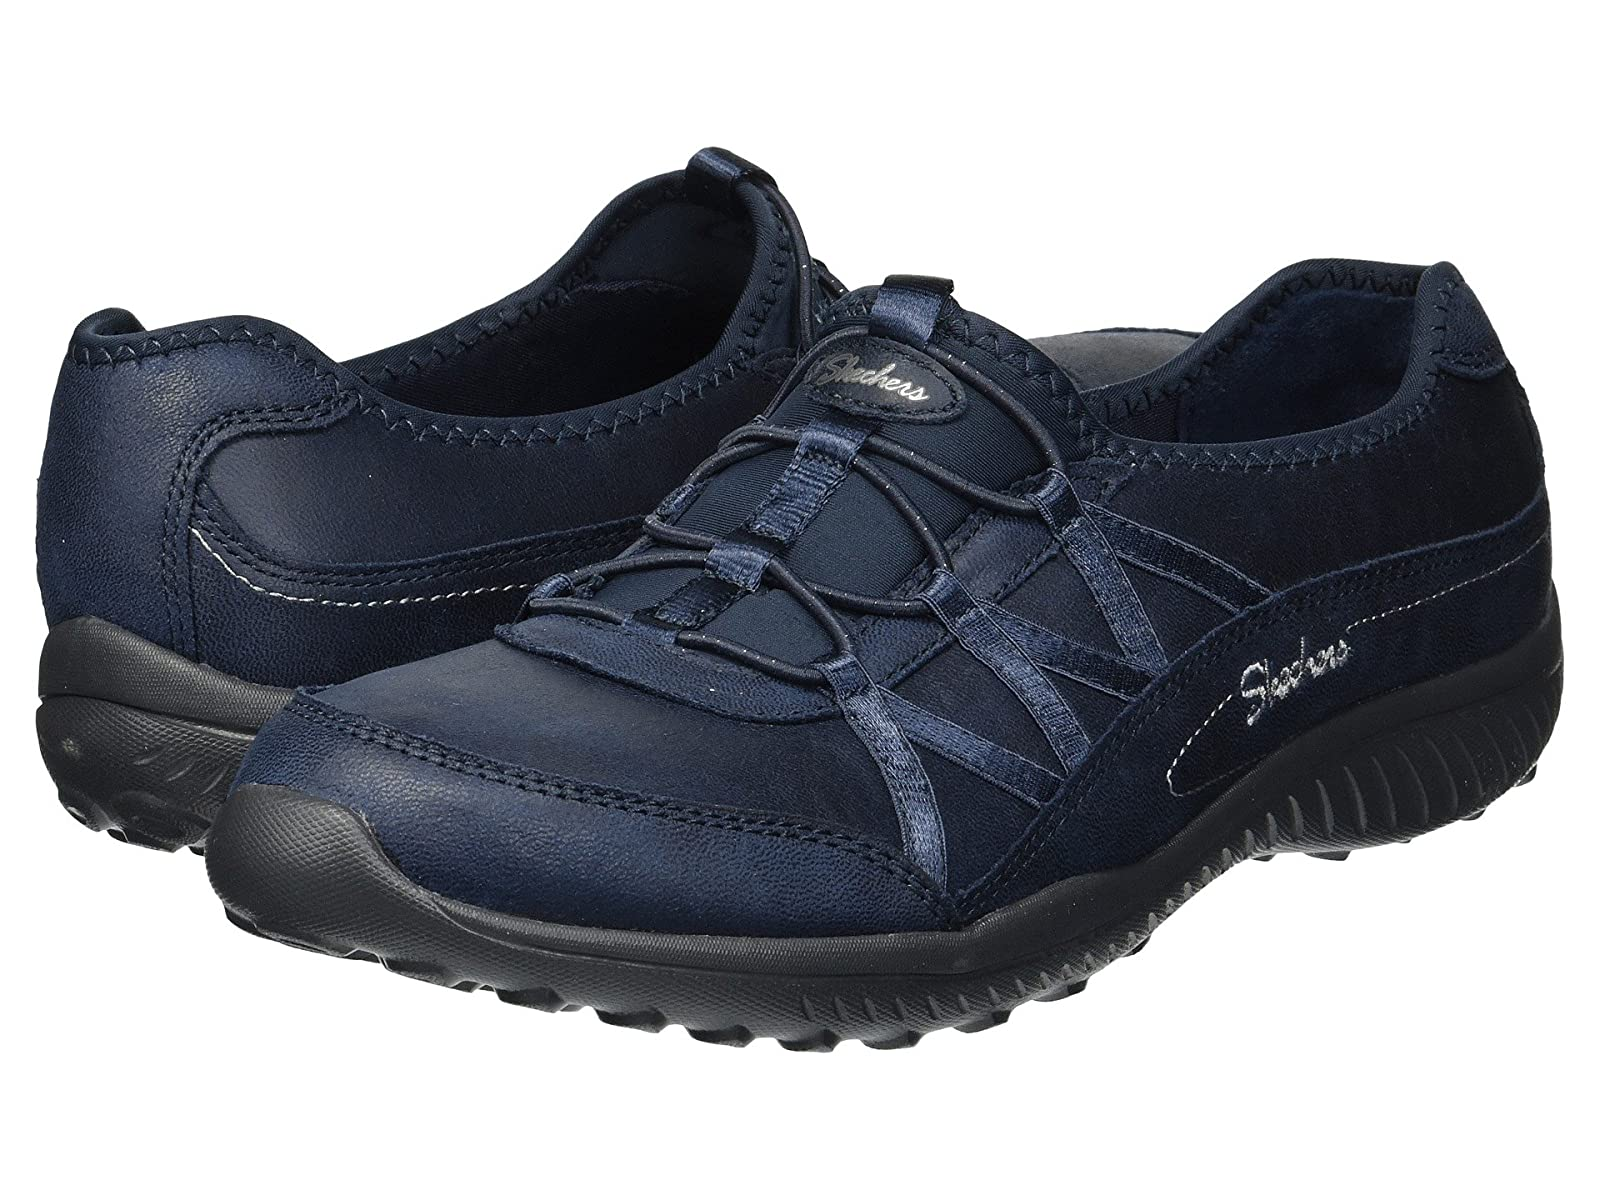 SKECHERS Be-Light - Well-To-DoAtmospheric grades have affordable shoes